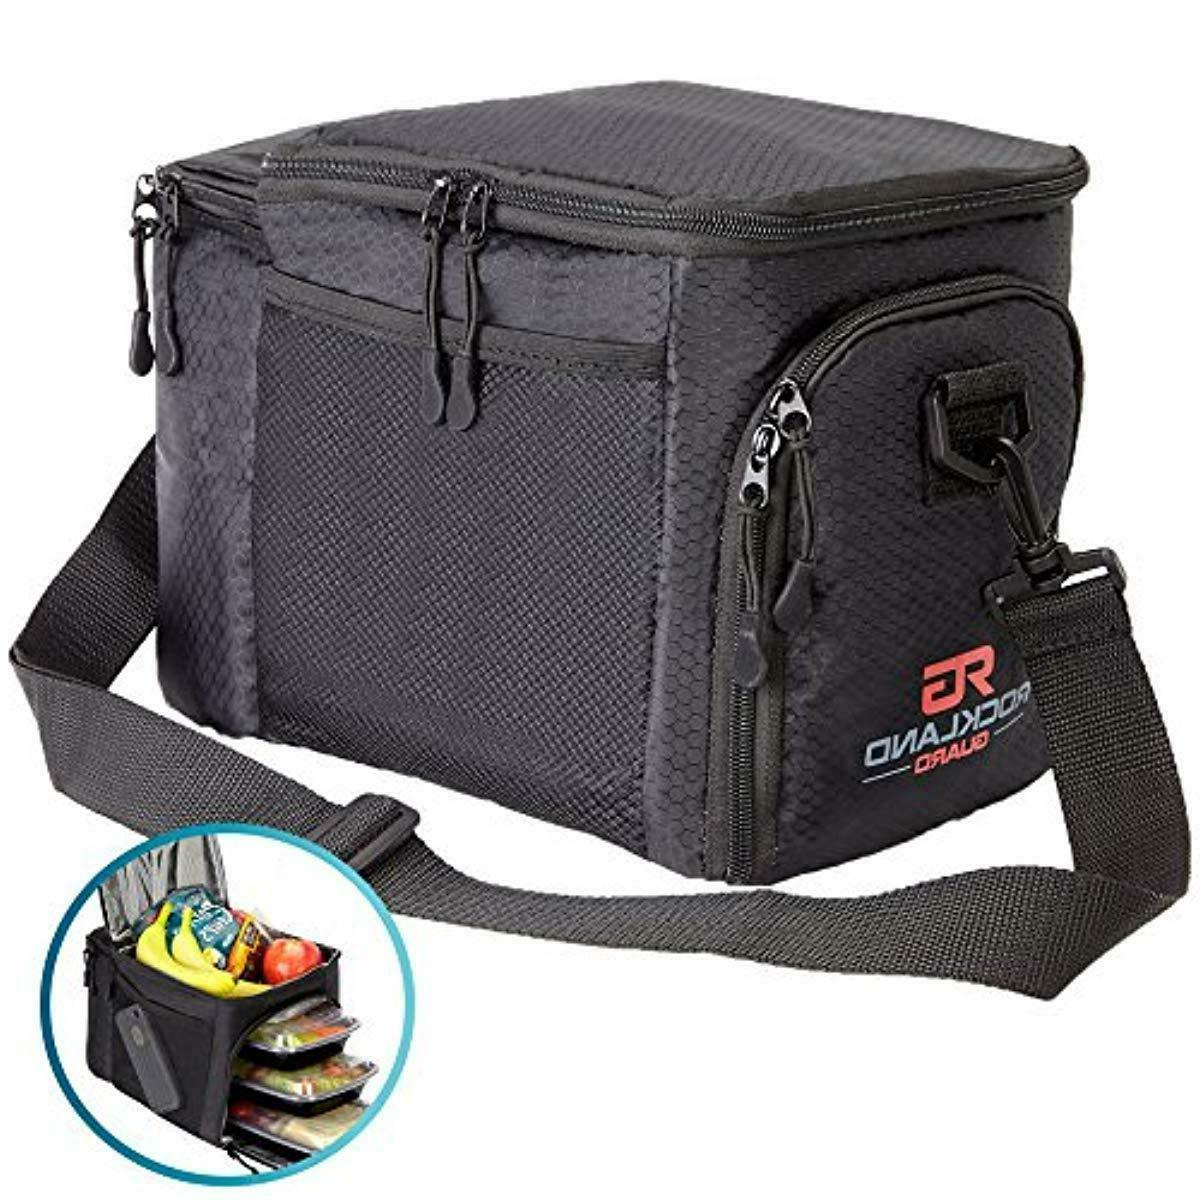 Rockland Guard Prep Bag Hot Cold Lunch Box Gym